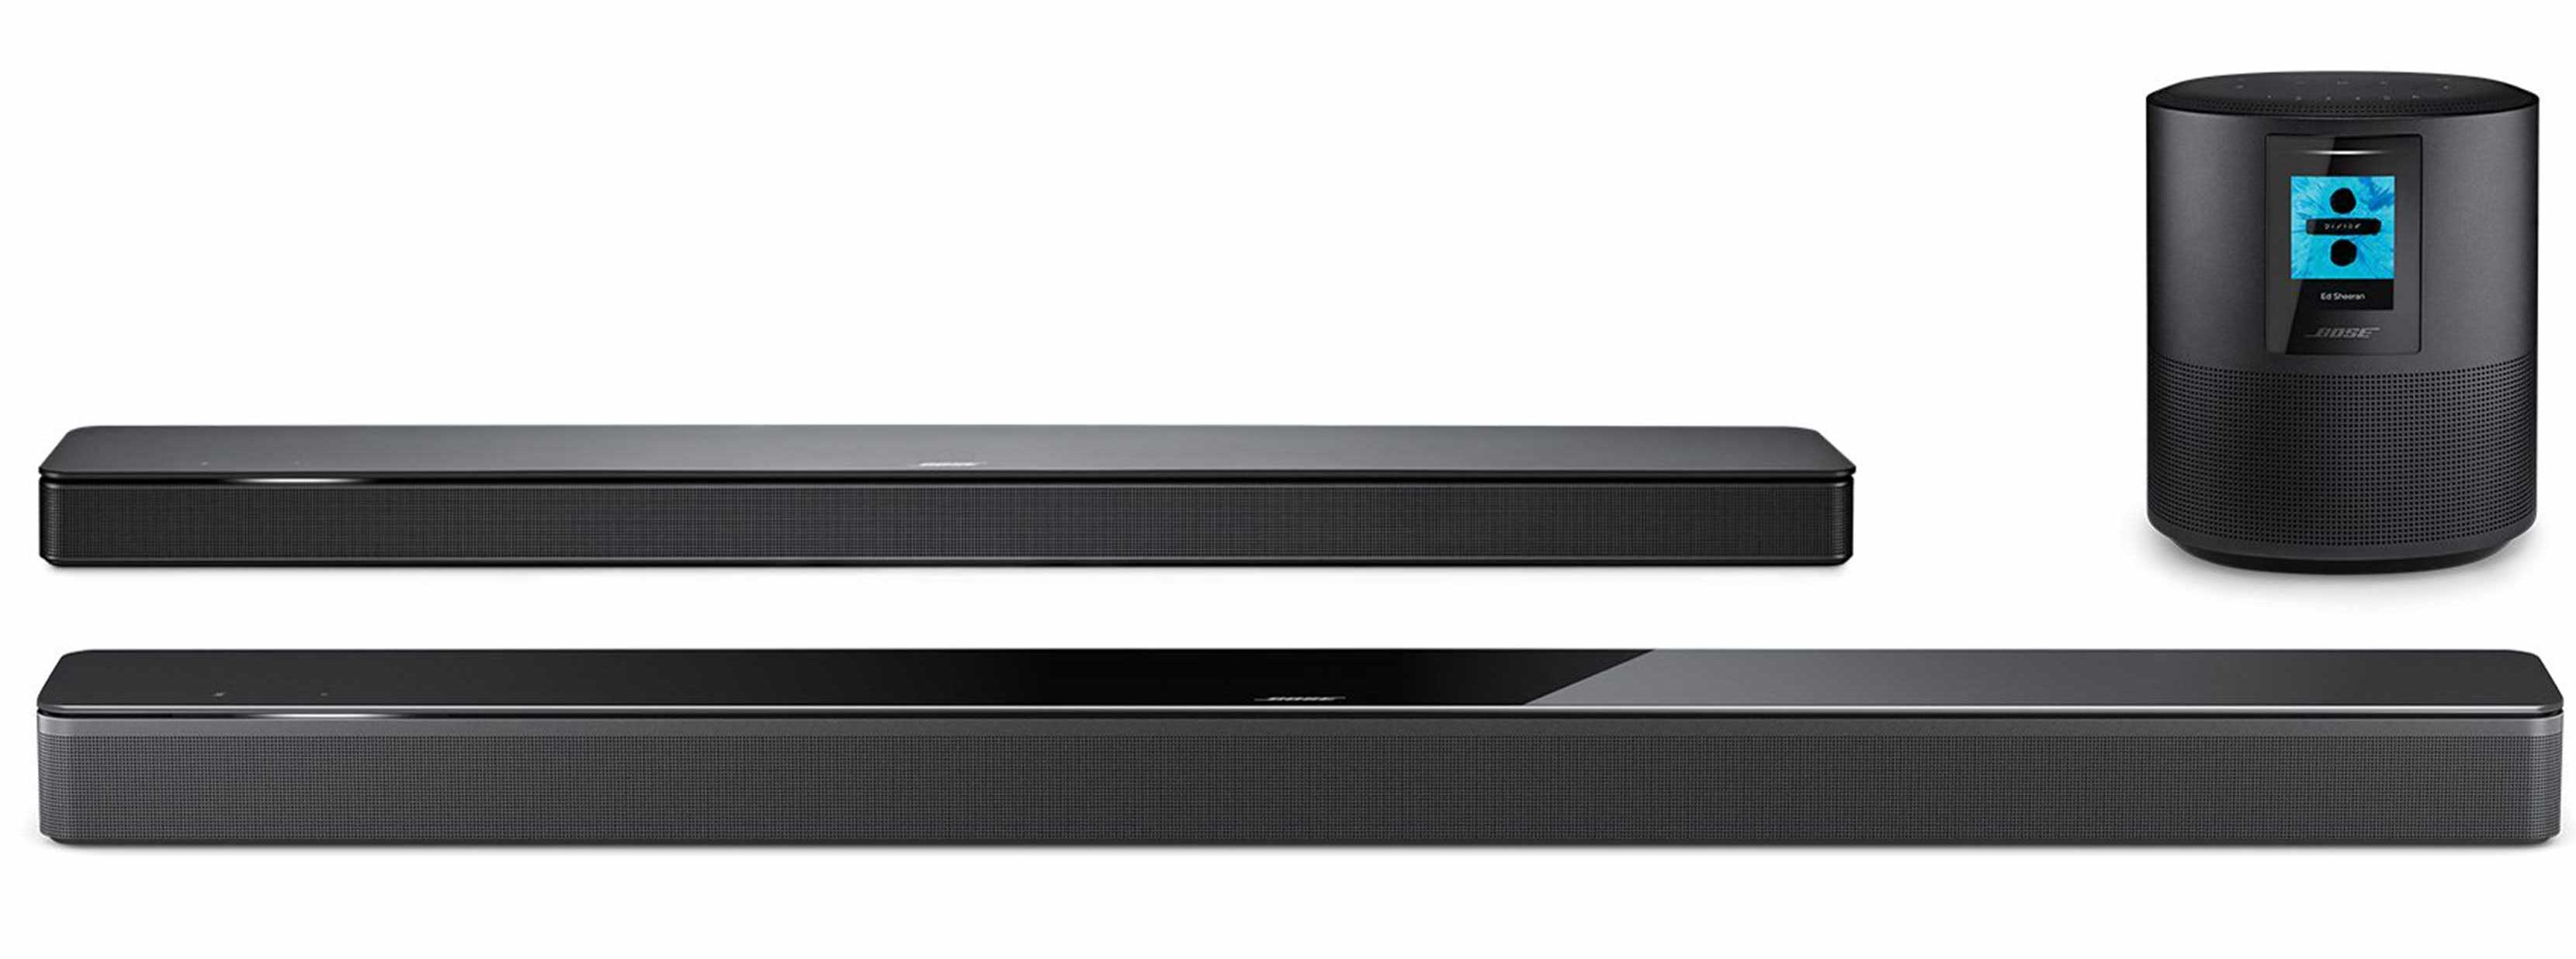 Bose shows off upcoming smart speaker and two soundbars